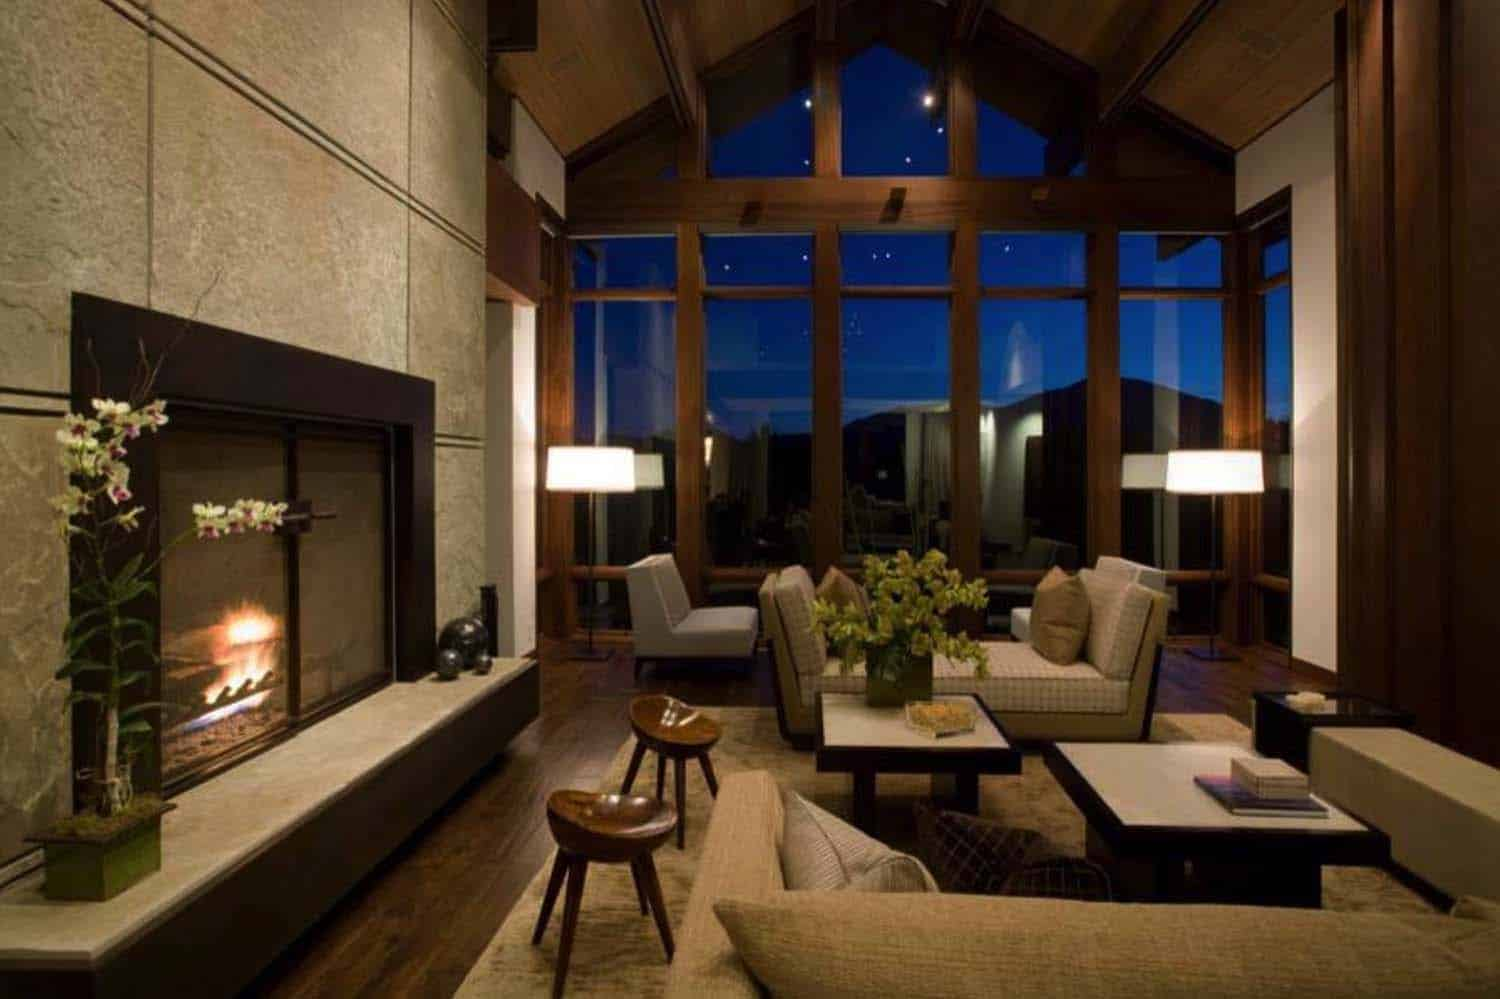 Contemporary Mountain Retreat-Jamesthomas Interiors-02-1 Kindesign